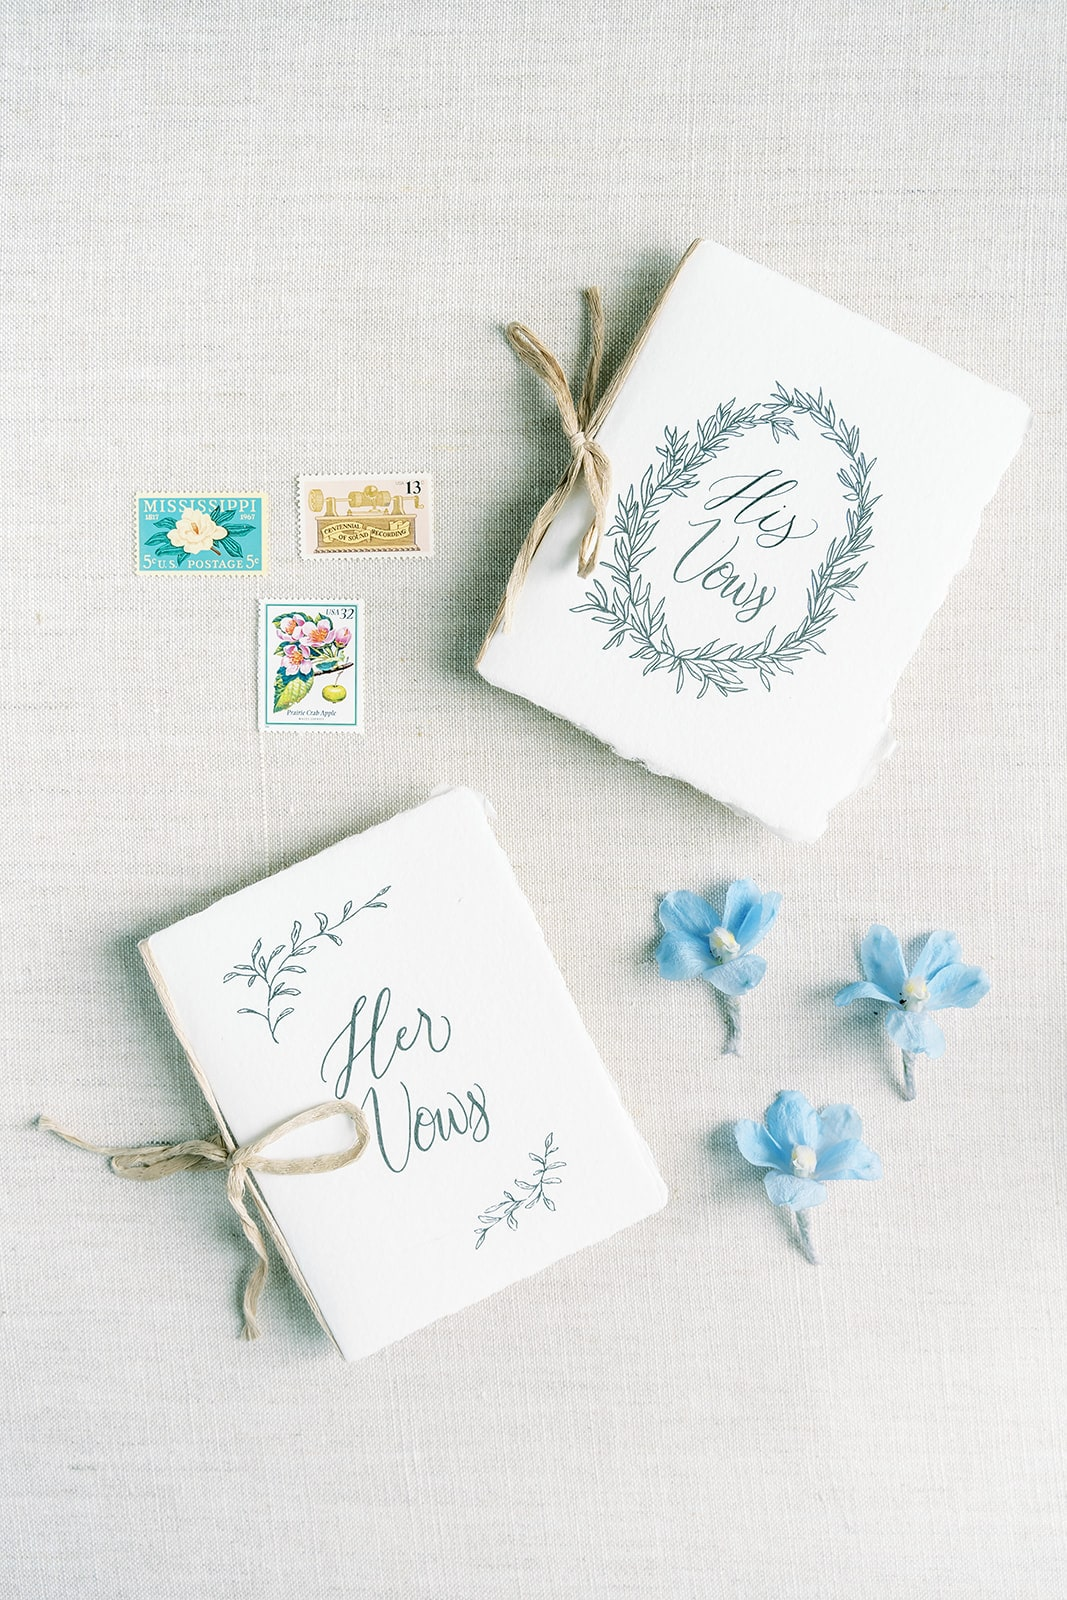 White and greenery wedding vow books | Nashville Bride Guide